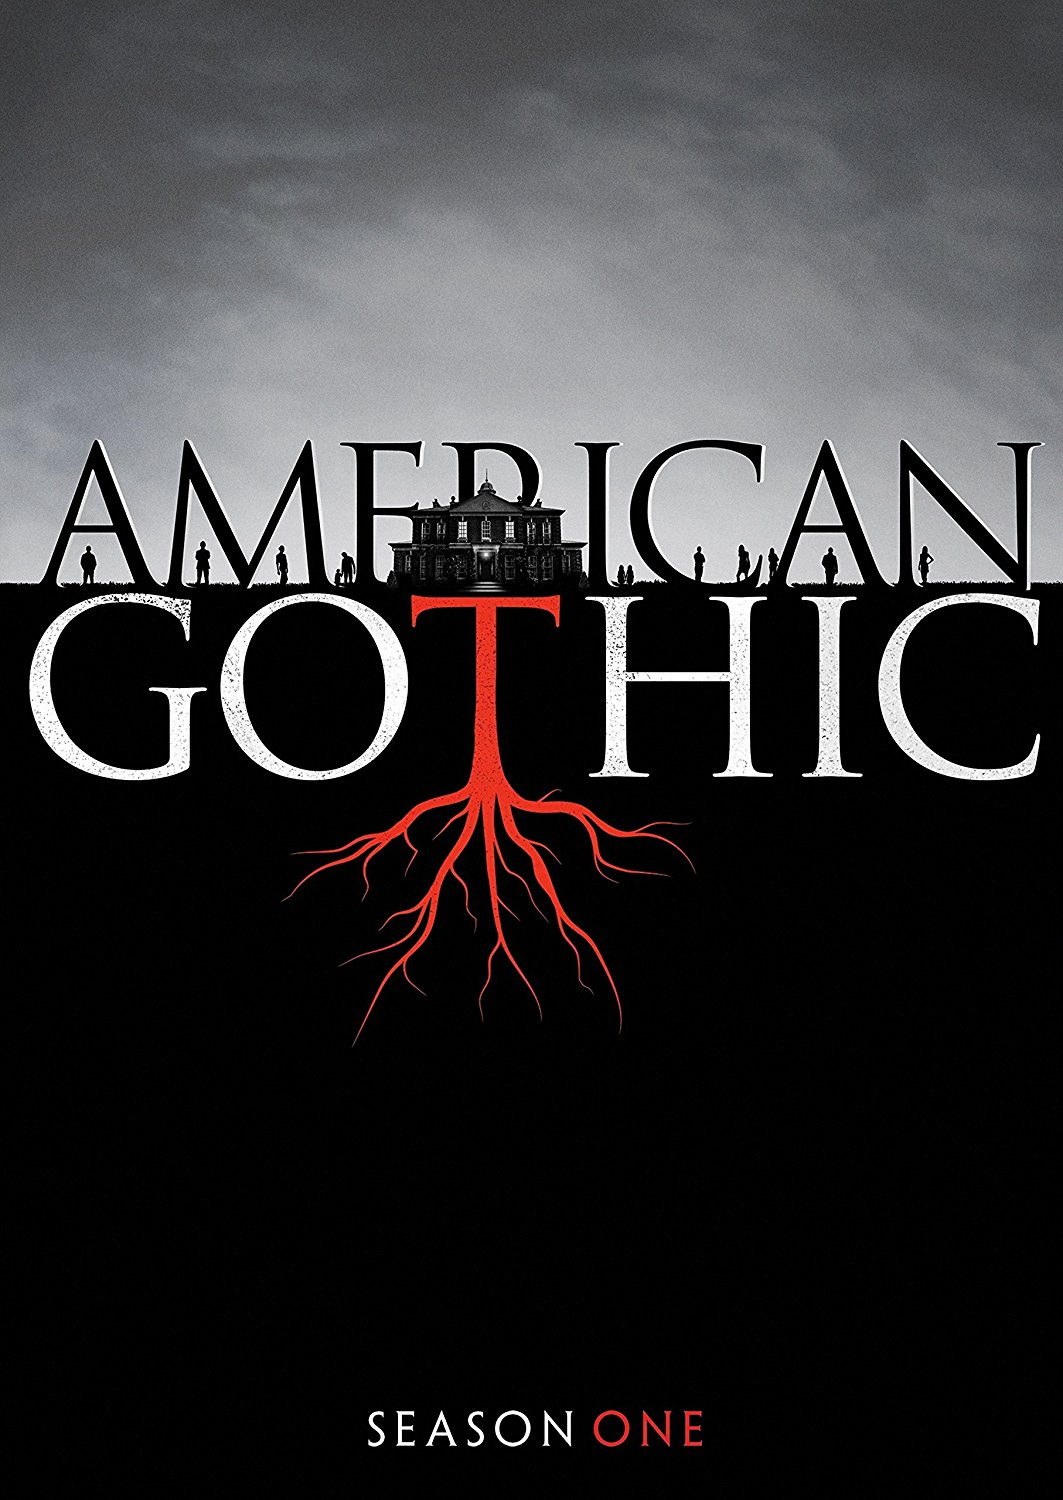 American Gothic [TV Series] - American Gothic: Season One